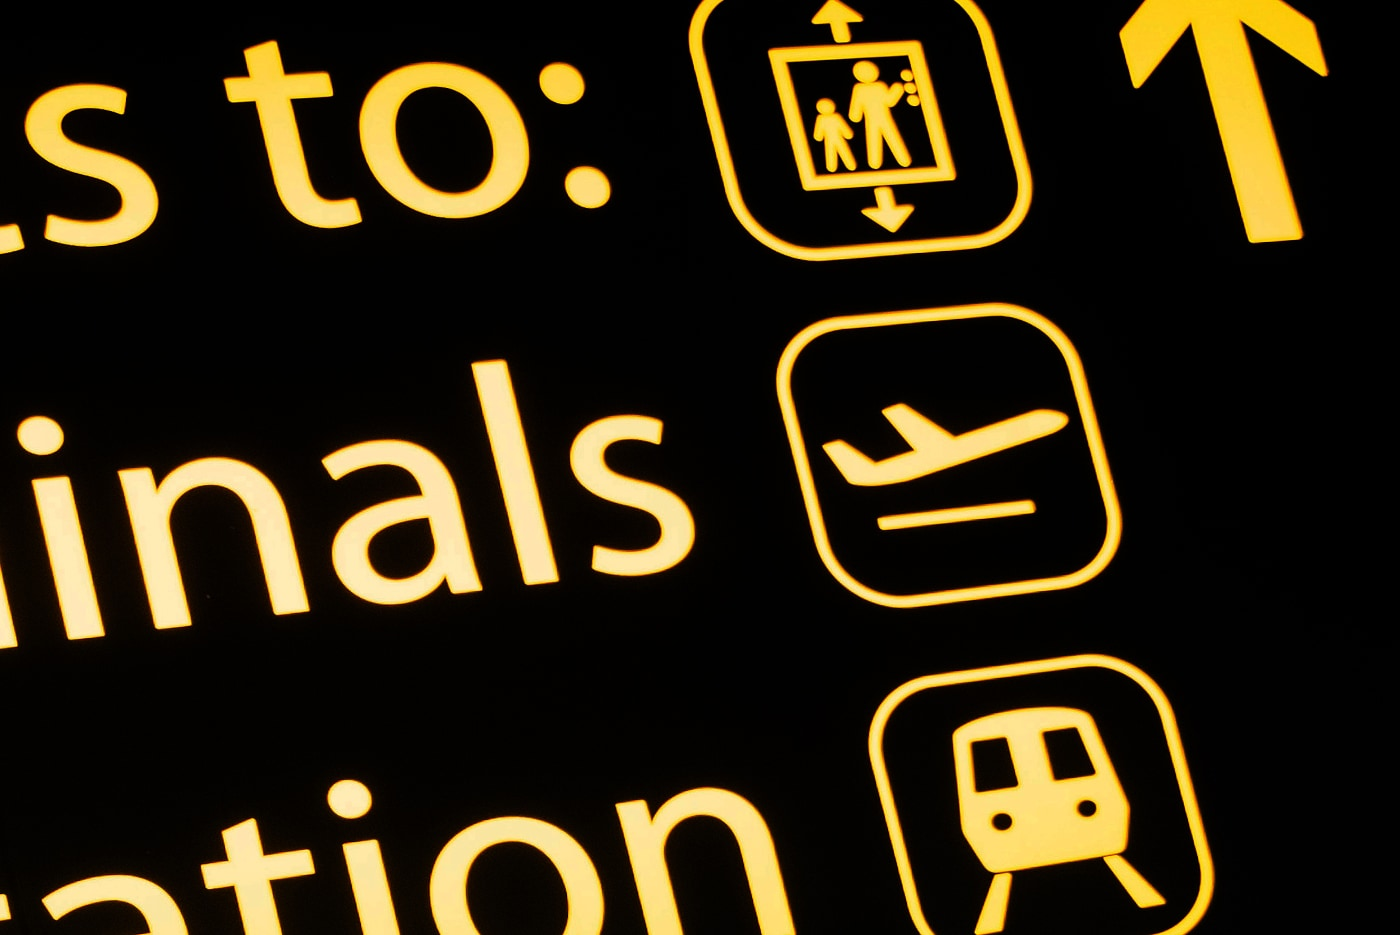 Gatwick Airport pictograms